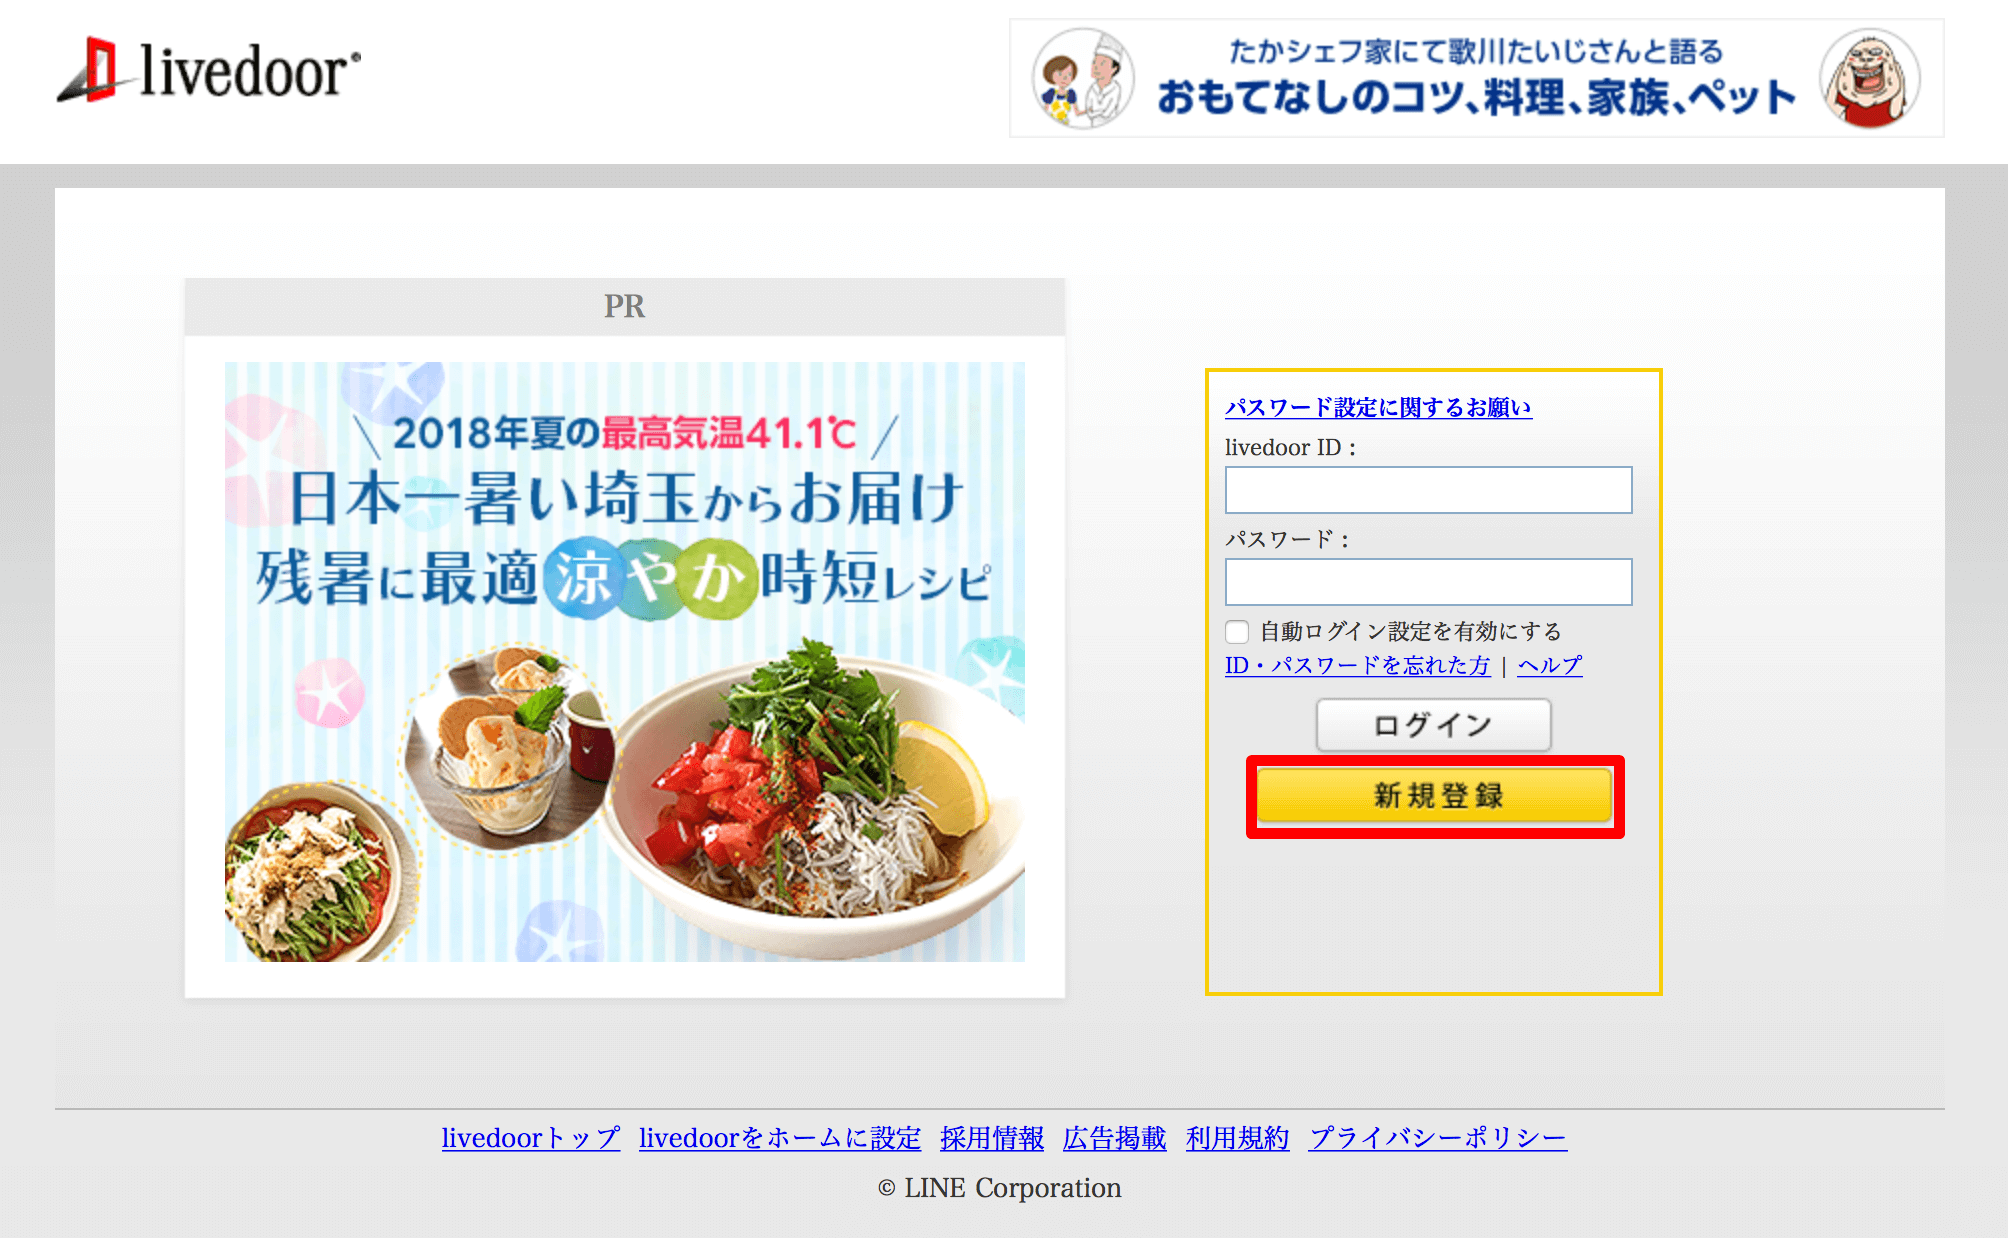 livedoor-blog-register